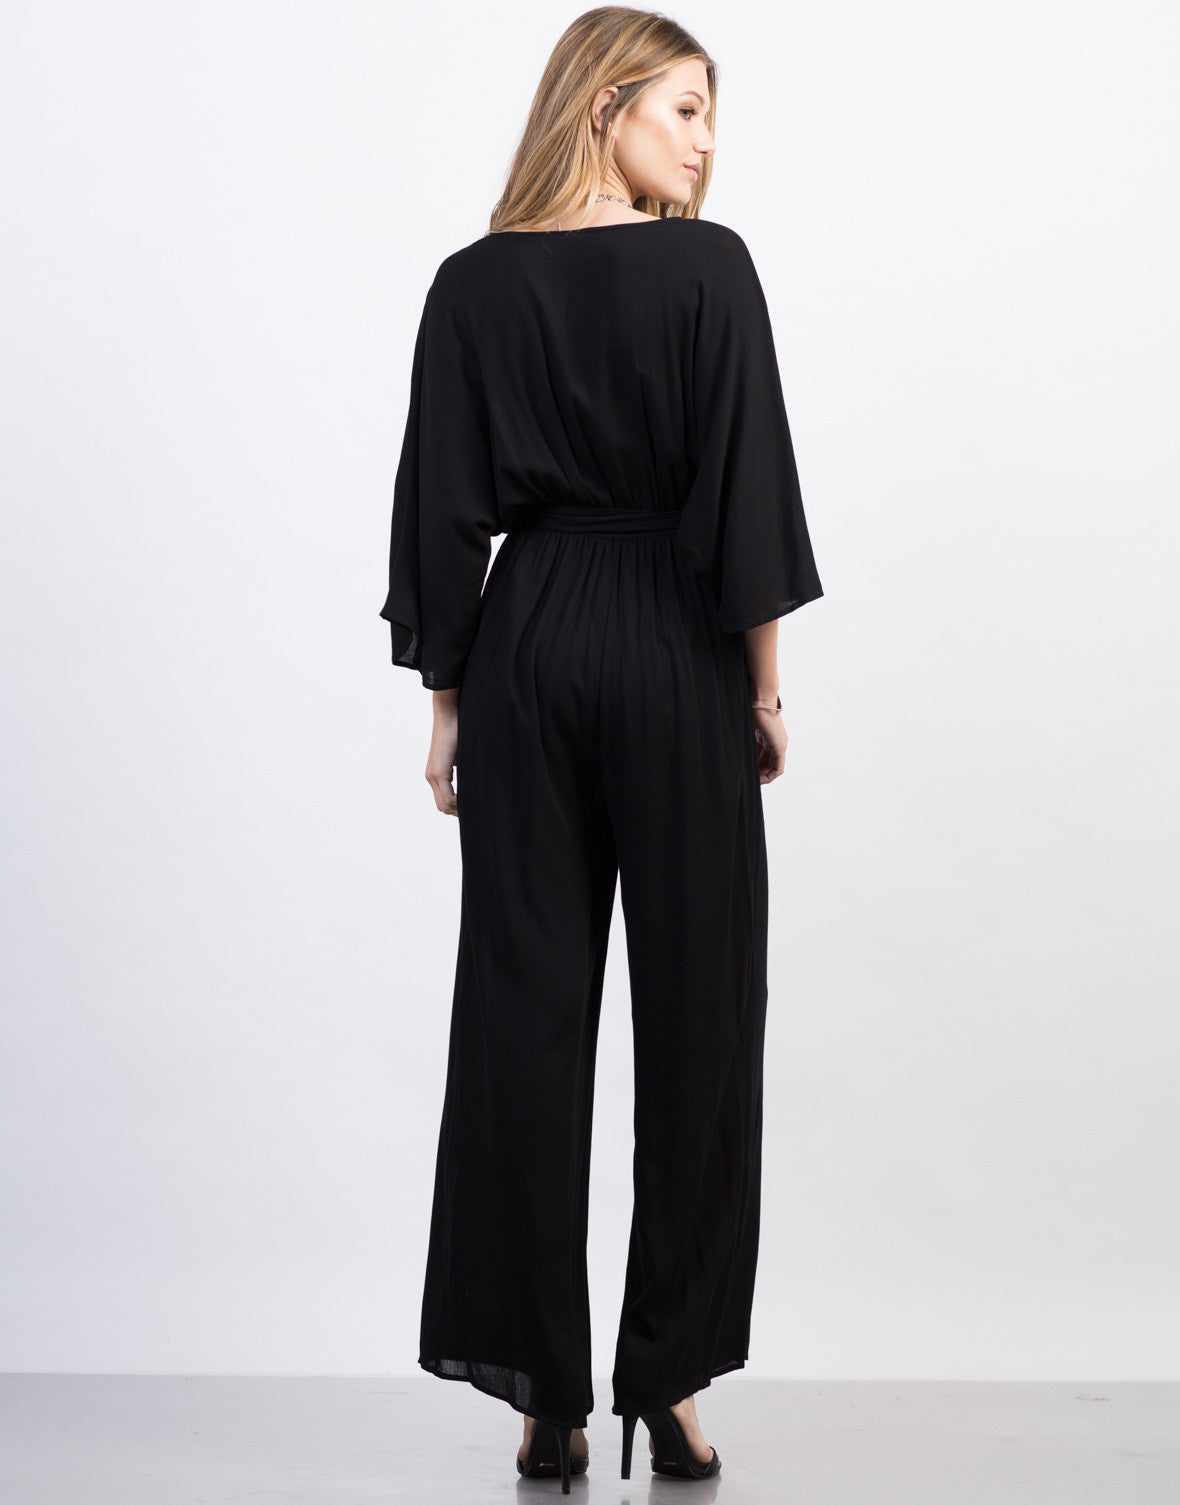 Back View of Kimono Jumpsuit